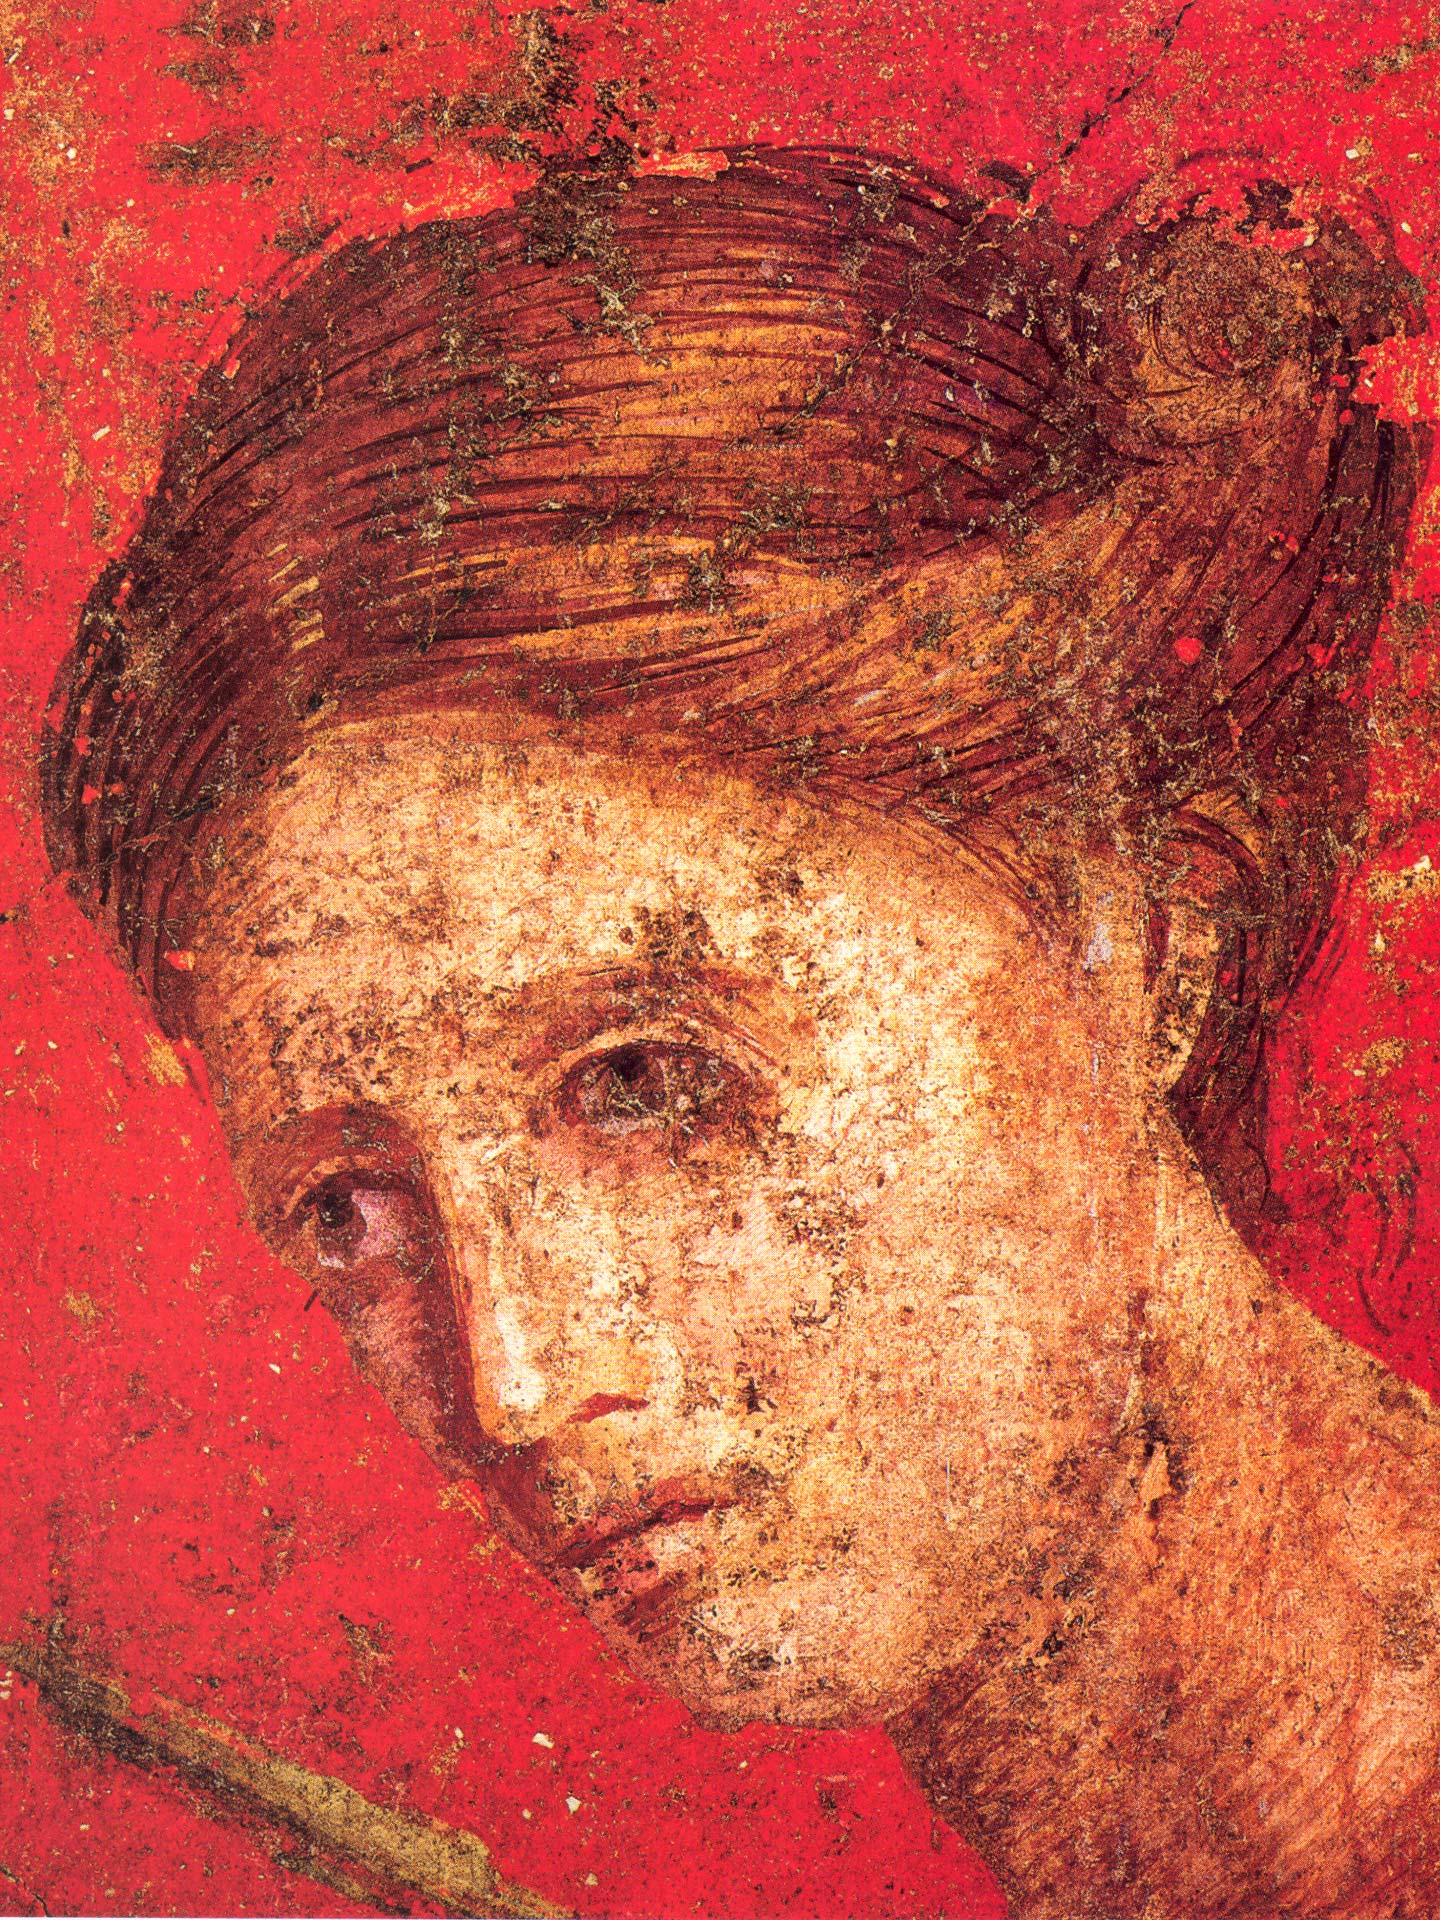 Female behind figure of the Bacchante in Scene VII from the Villa of the Mysteries, Porta Ercolan, Italy